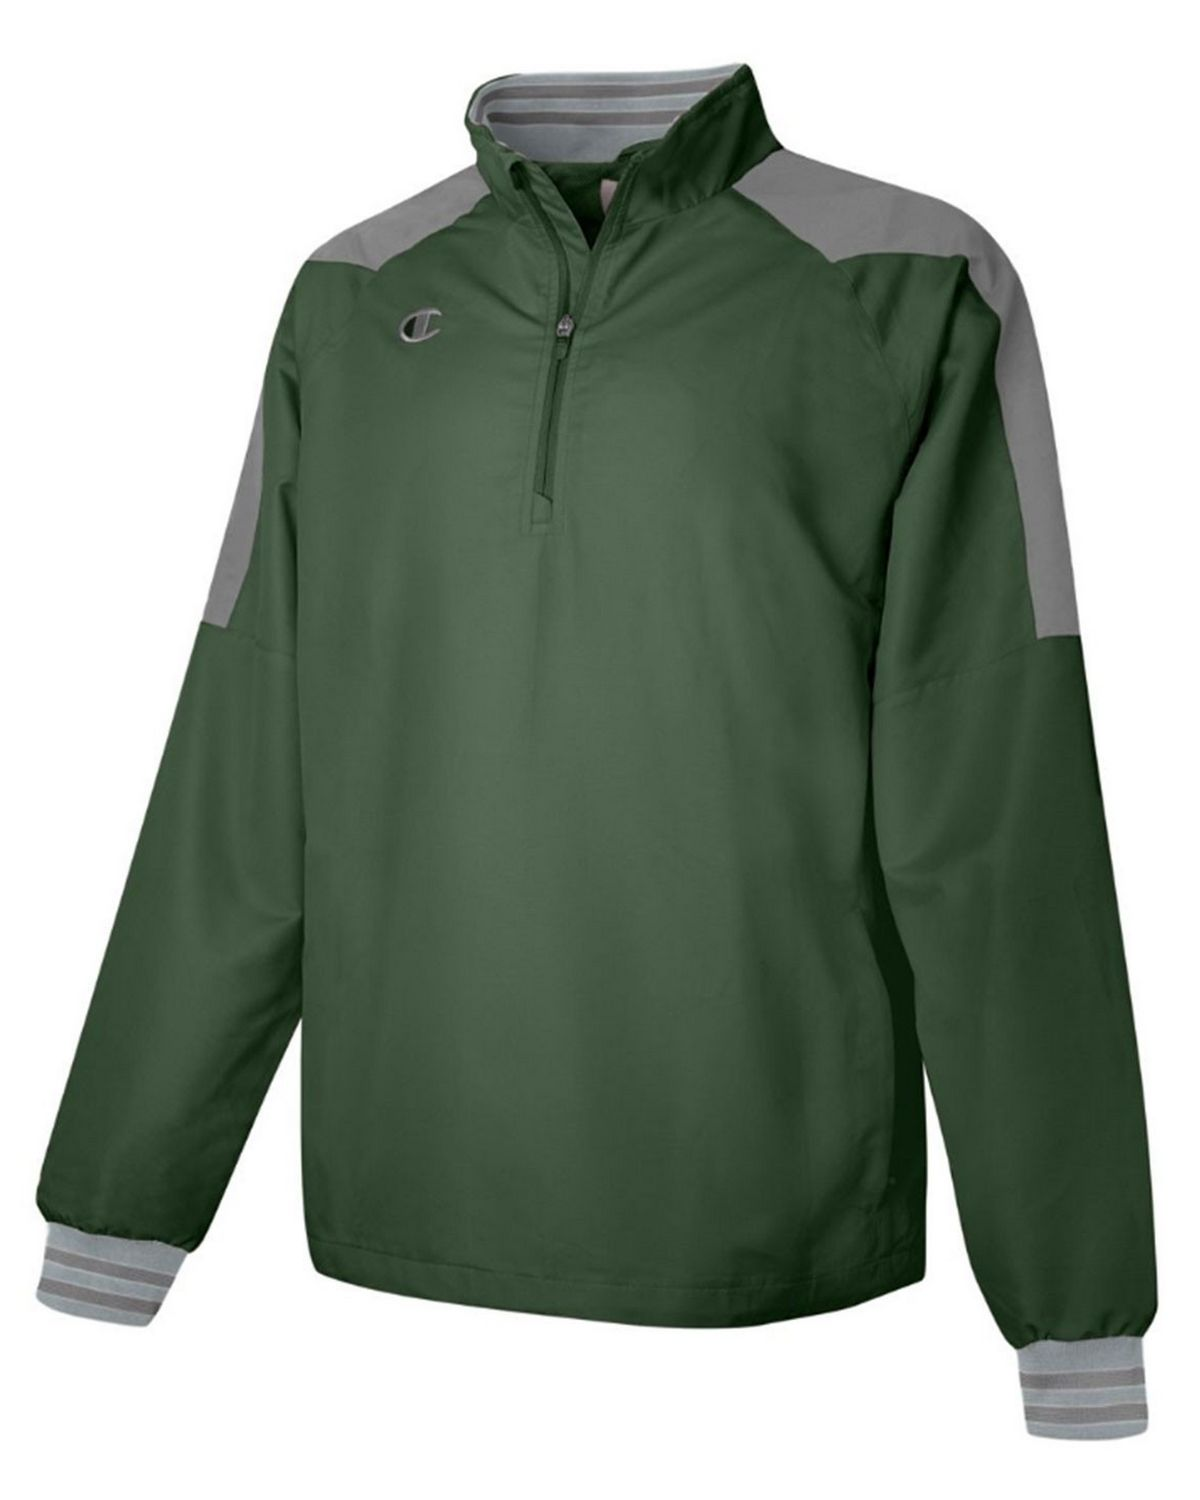 Champion V072 Mens 1/2 Zip Jacket - Team Dark Green/Dark Platinum Gray - XL V072